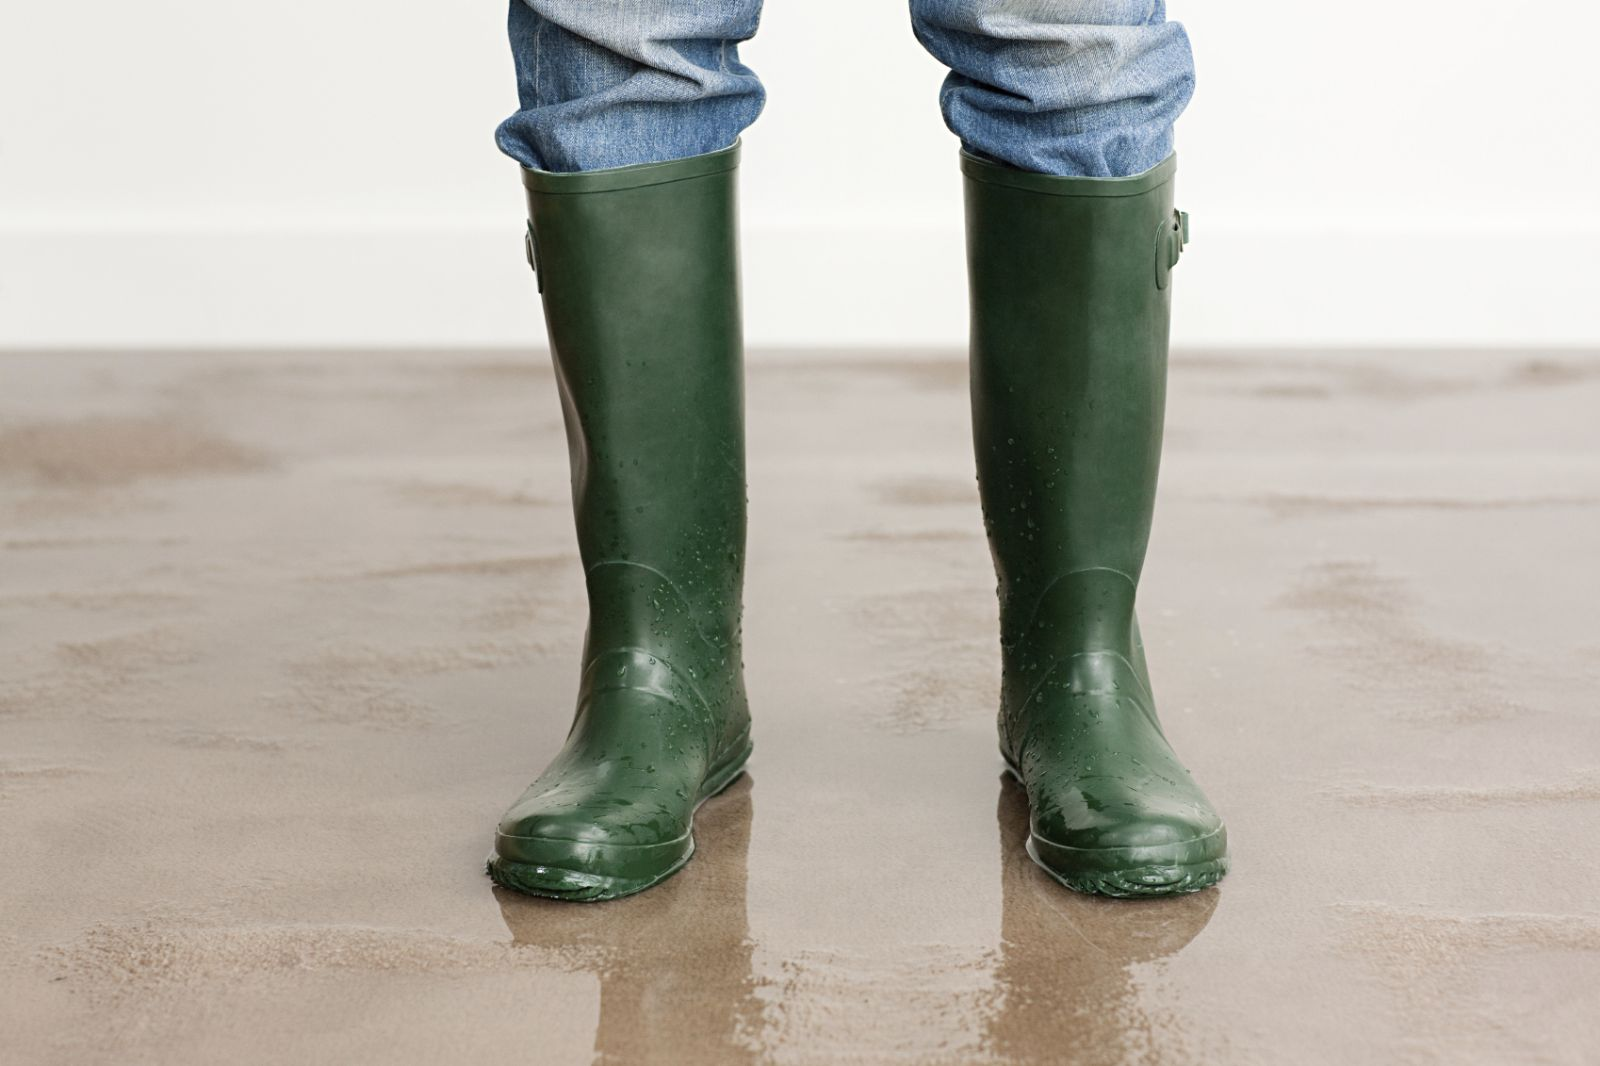 Green boots standing in water